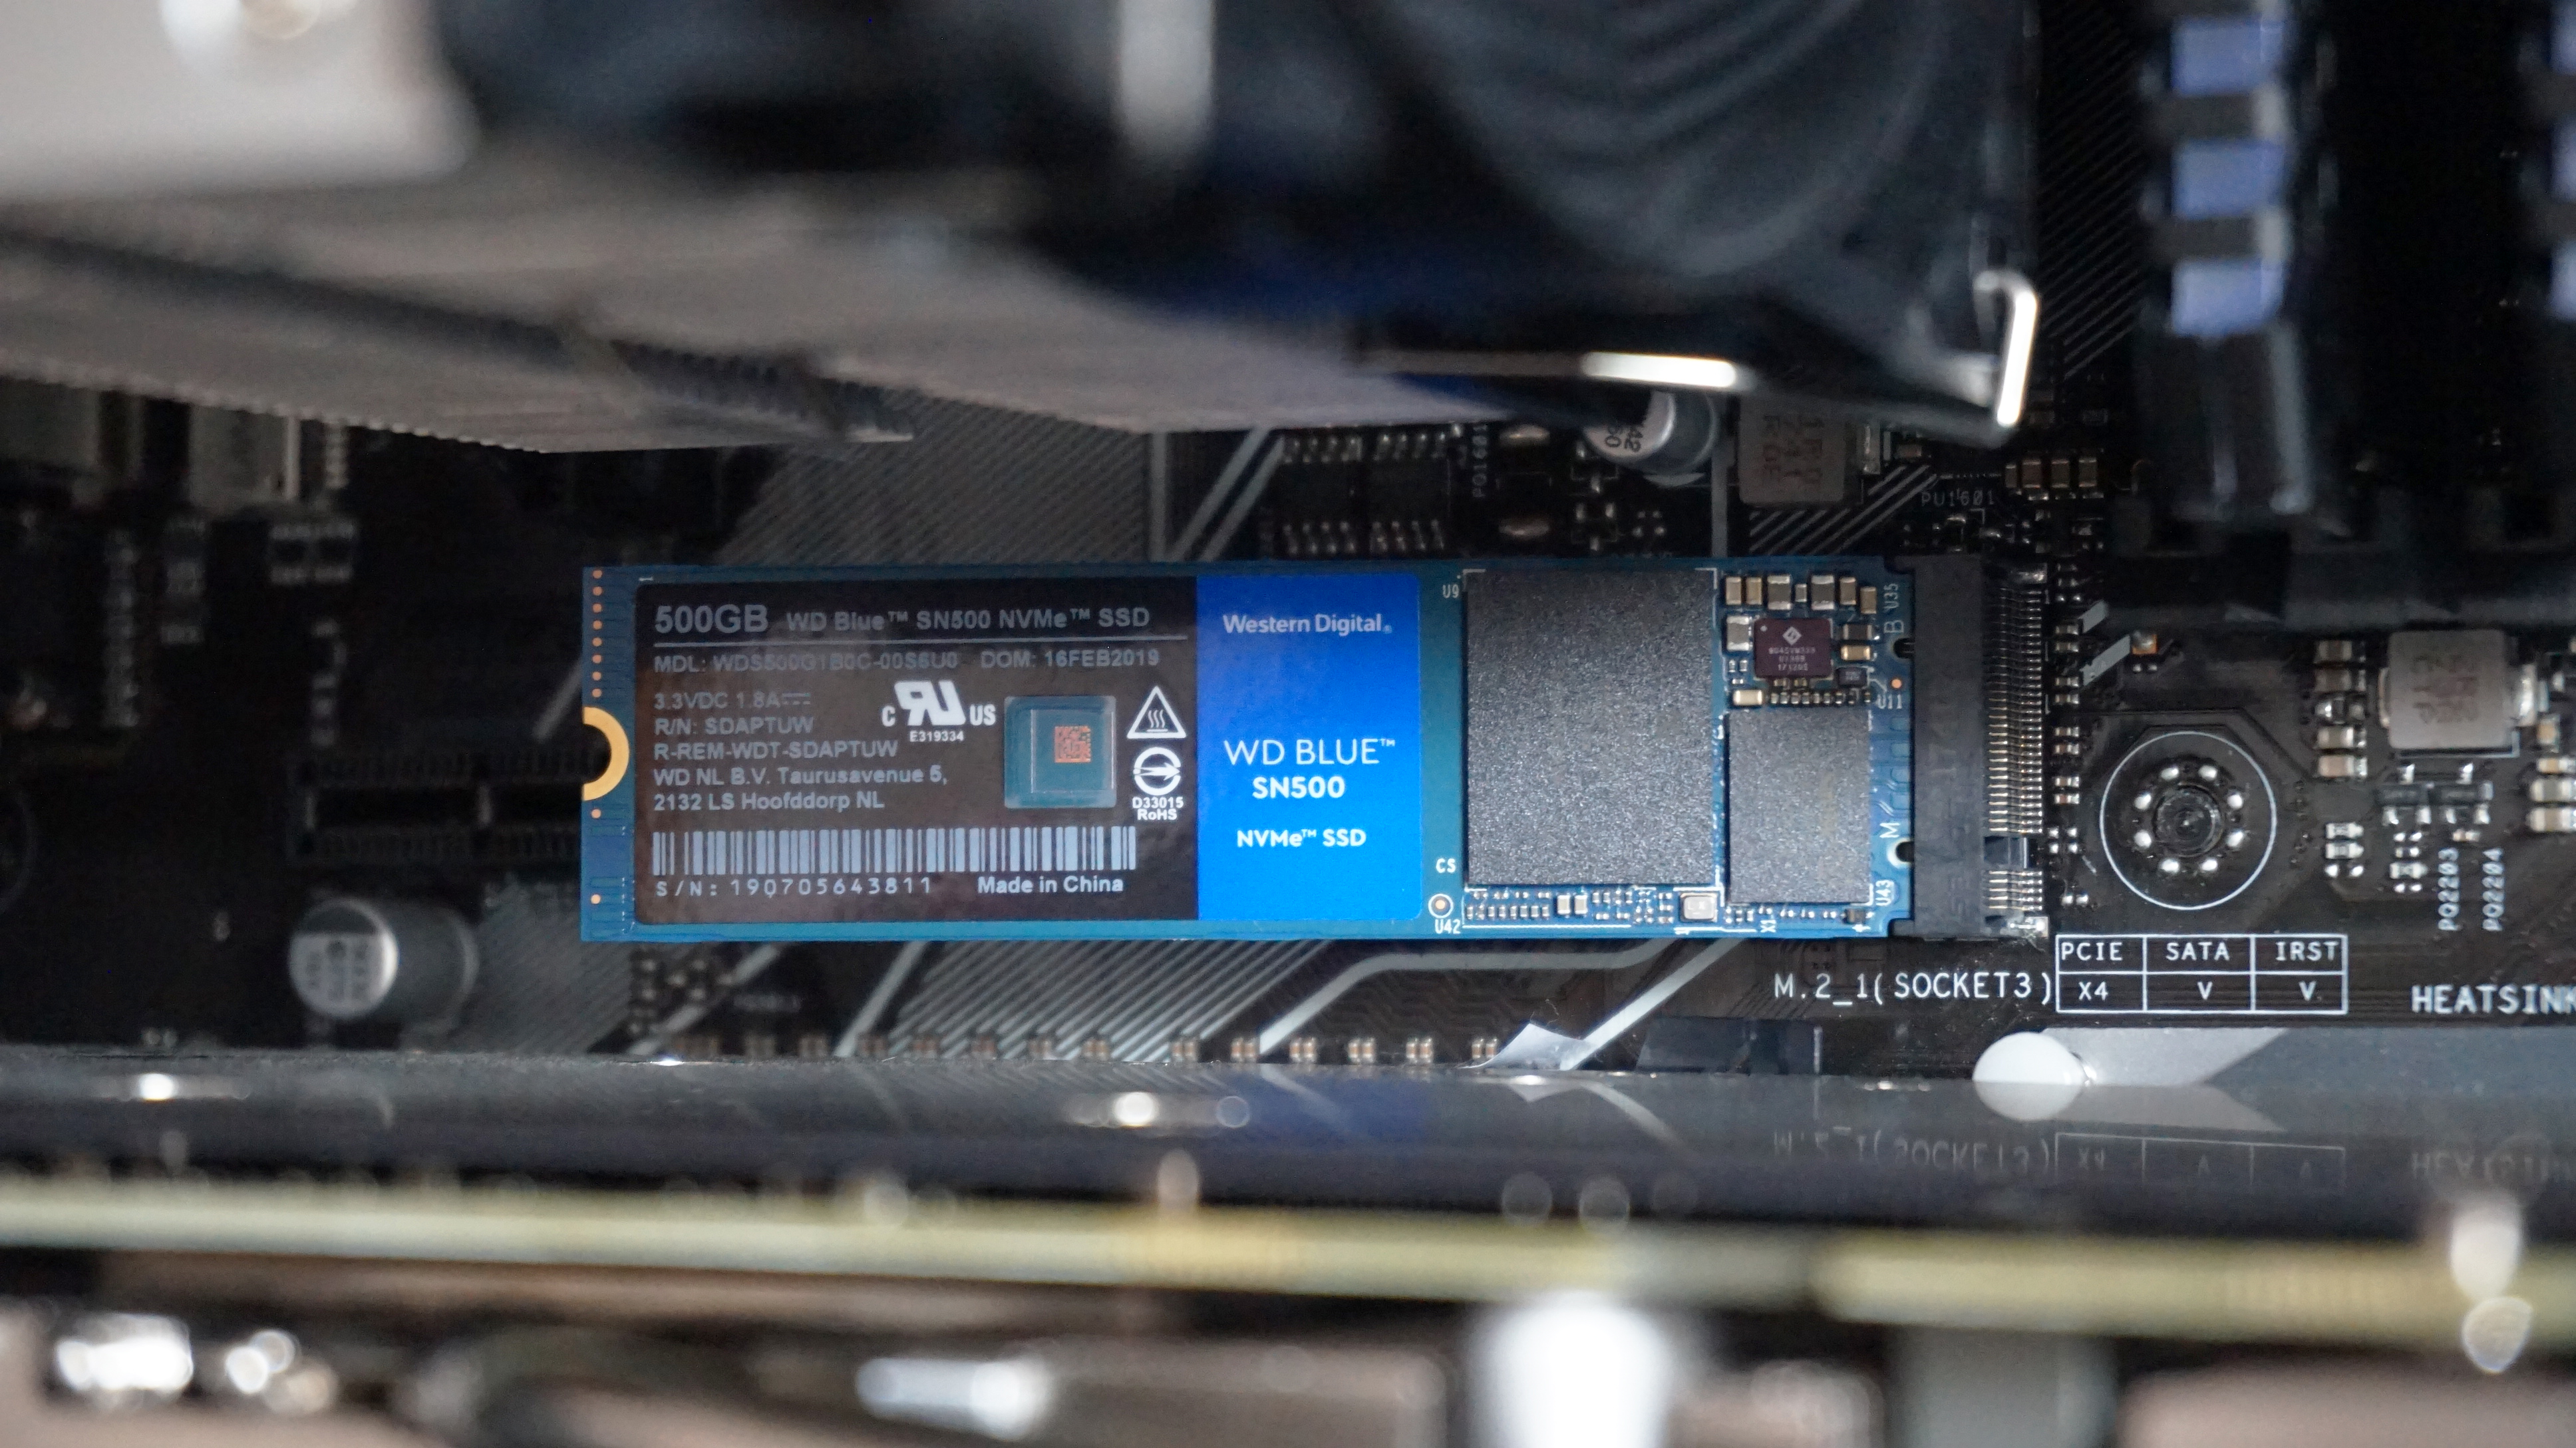 WD Blue SN500 review: The best value NVMe SSD around | Rock